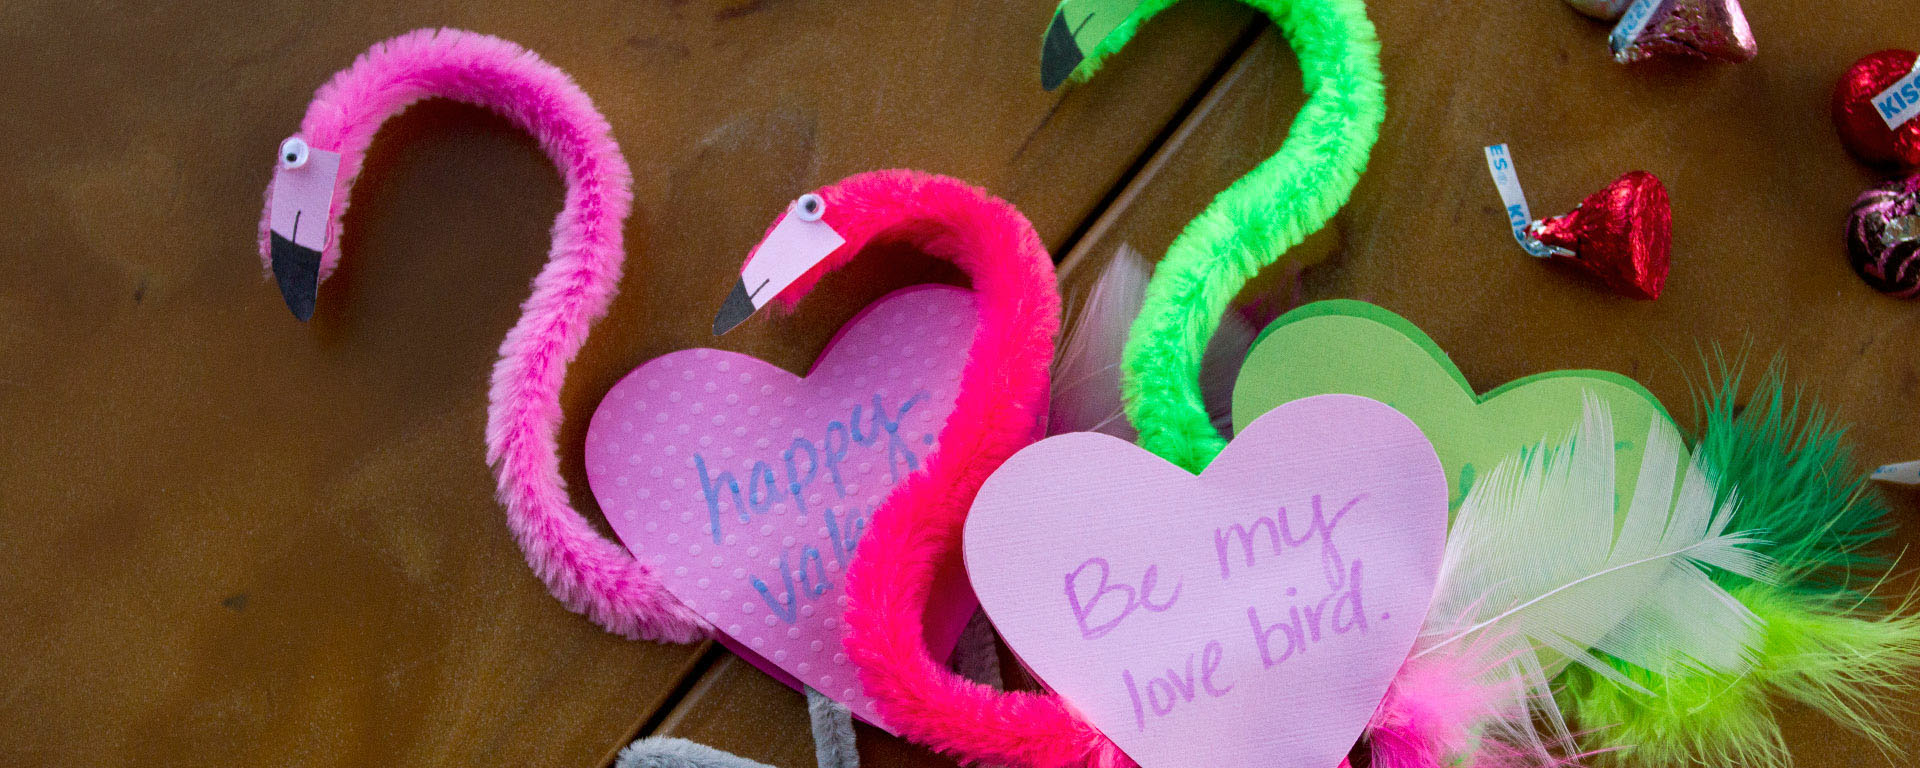 FEATURED-Valentine-Flamingos800